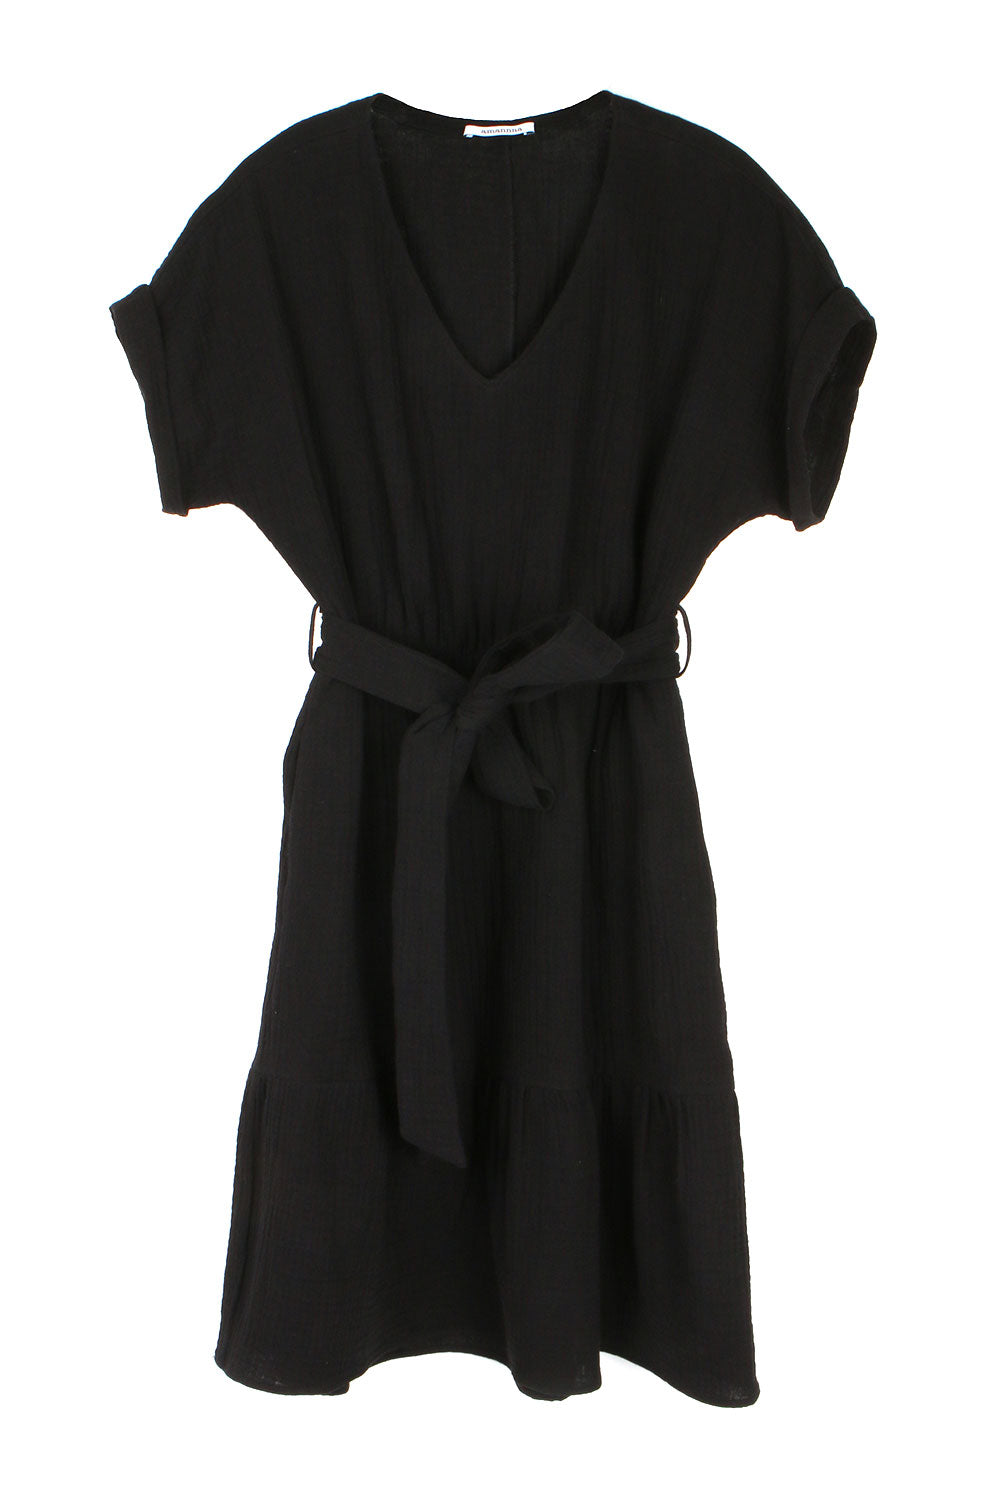 Willow Black Dress